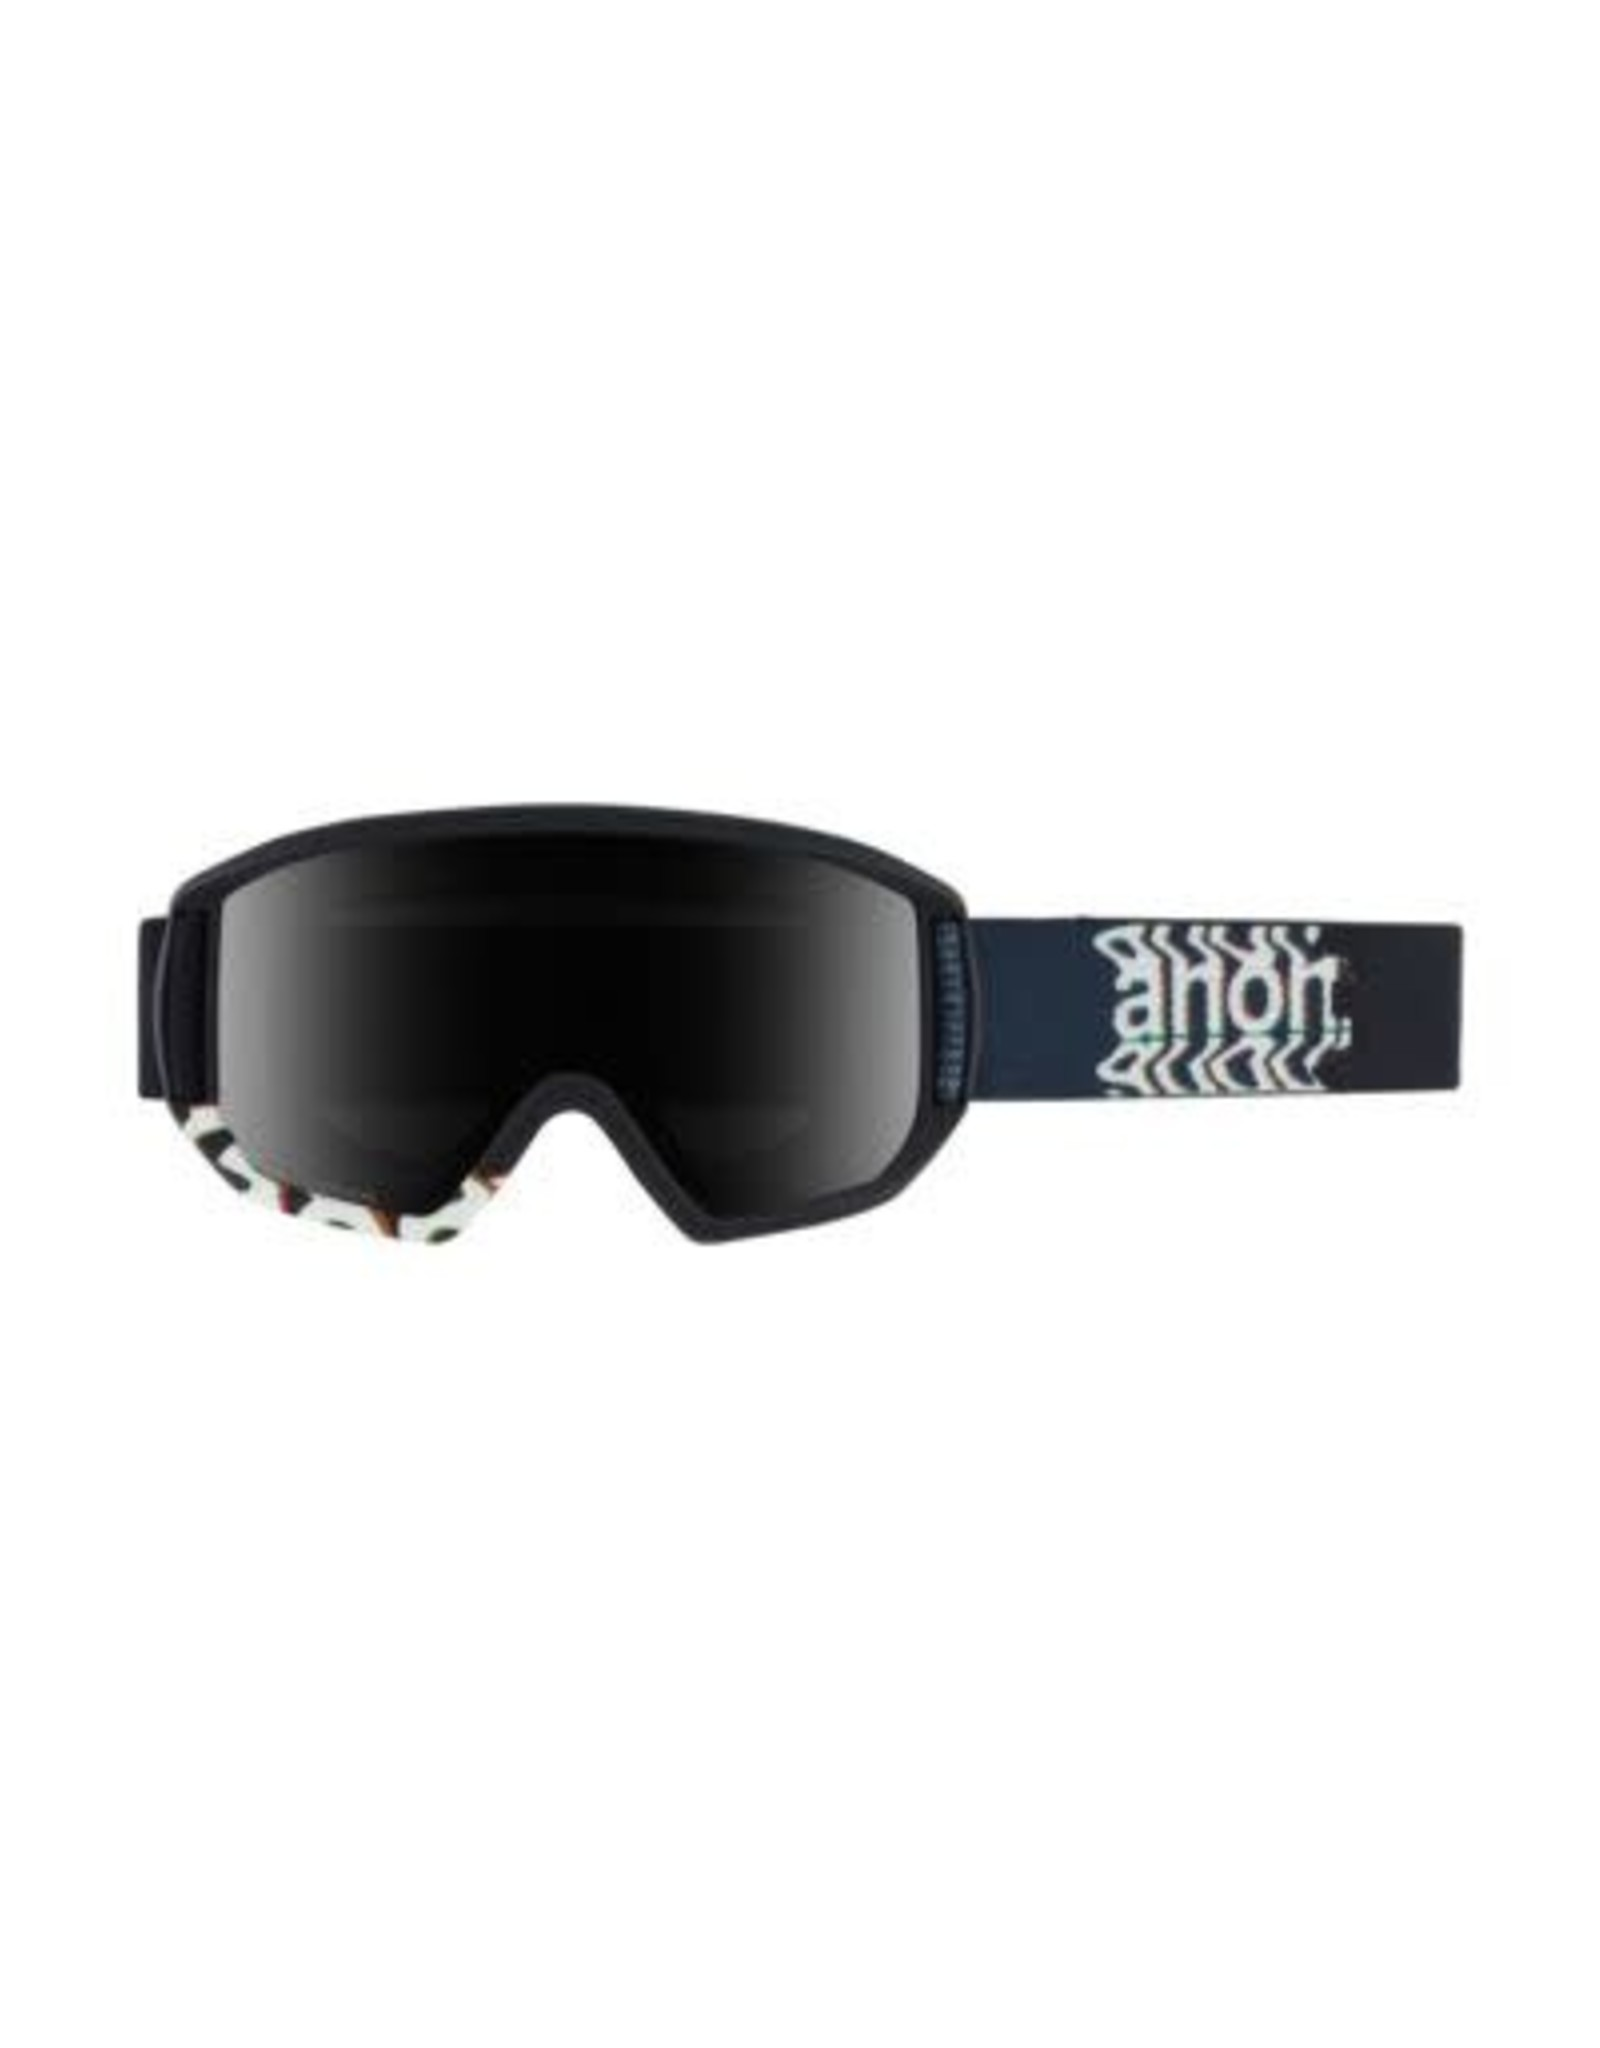 Anon Relapse Goggle Spare Lens Mfi Facemask Pathfinder Of Wv